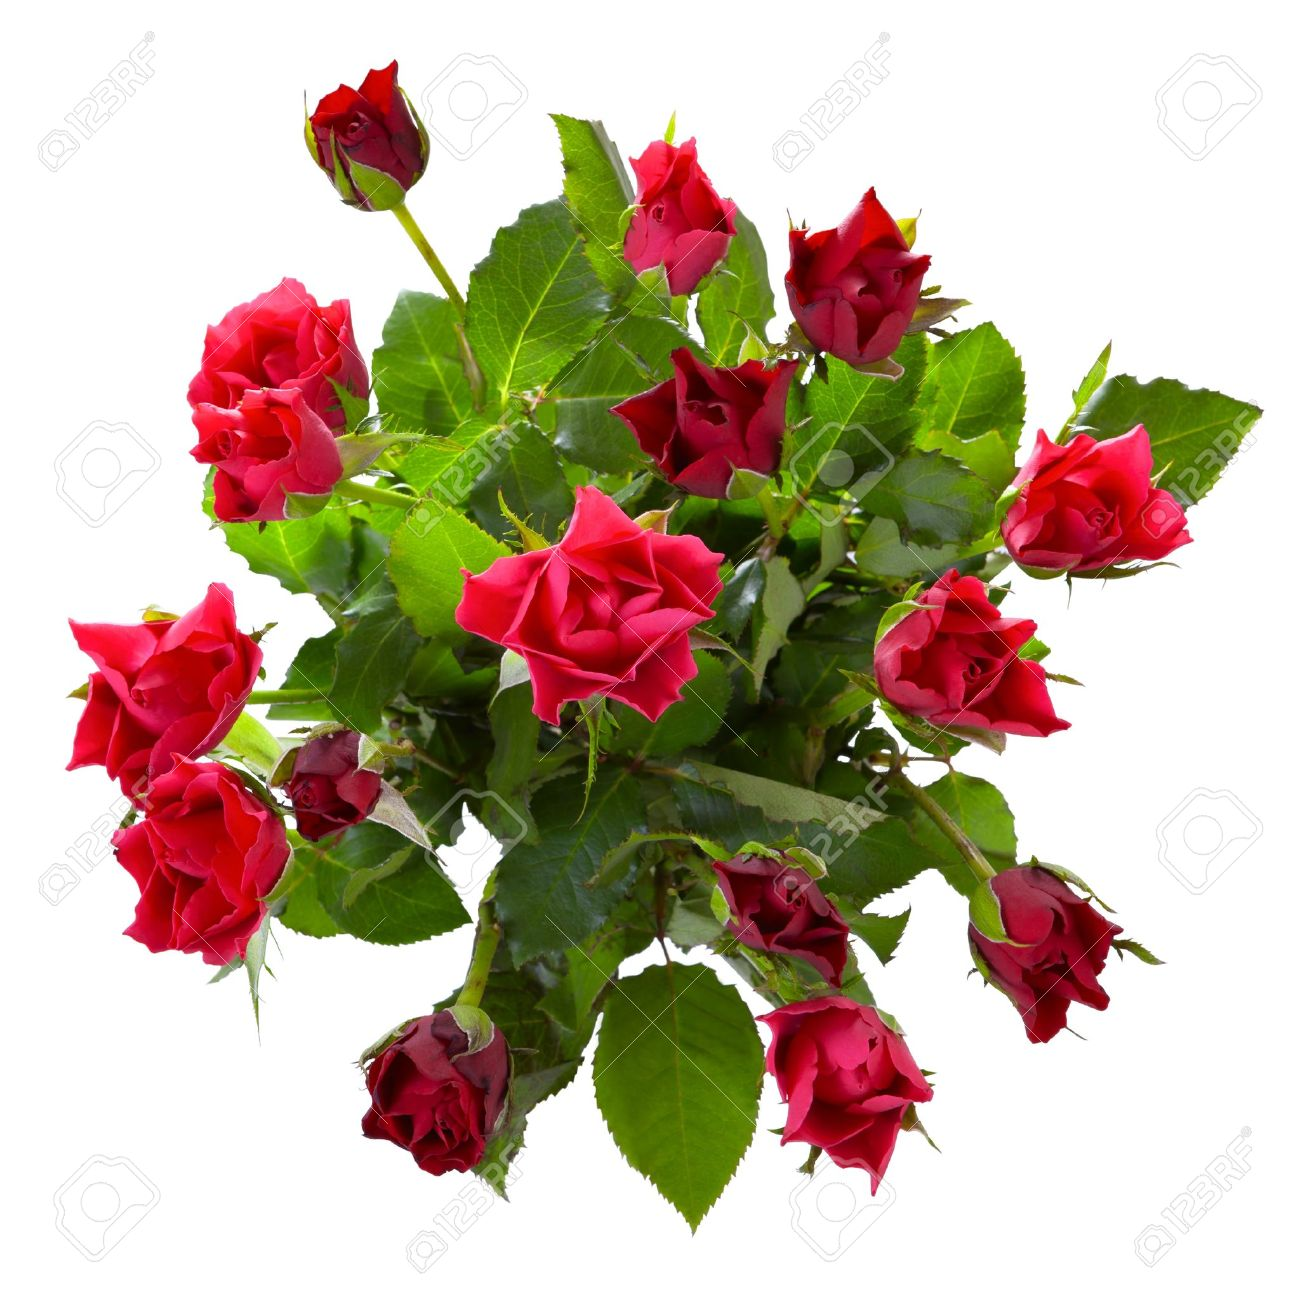 Top View Of Red Roses Bouquet Isolated On White Background Stock